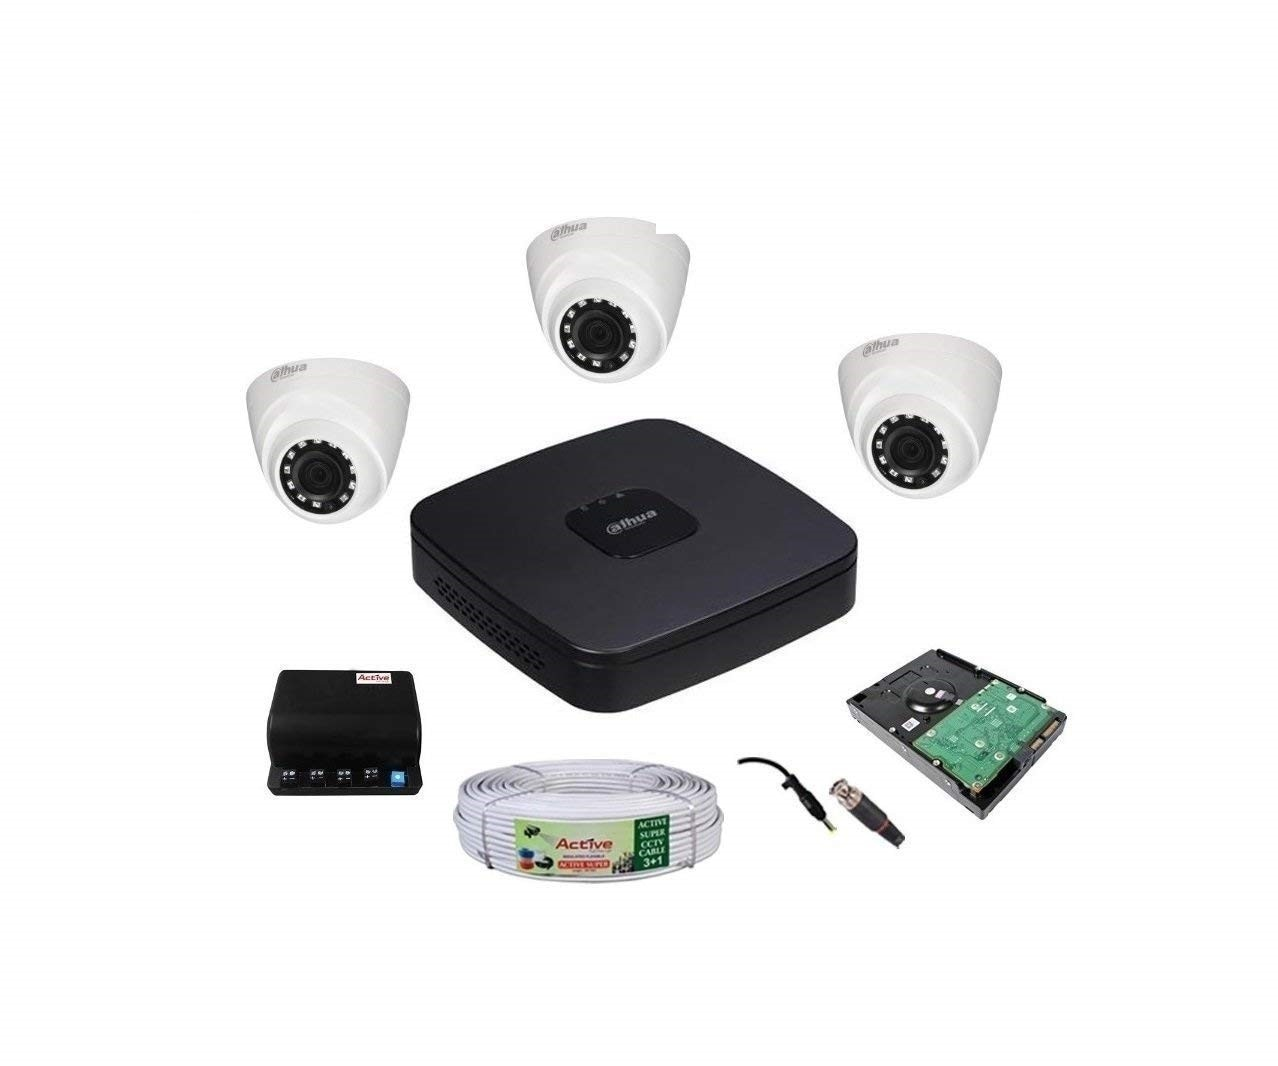 •	Dahua FULL HD 2-MP 1080P DVR 4CH 1-Pcs, 1TB SURVELLANCE HDD. •	Dahua FULL HD DOME 2-MP 1080P Dome Night Vision Camera 3Pcs. •	FEECOM 3+1 Copper Cable, FEECOM Power Supply, BNC 6Pcs, DC 3Pcs. ( Installation is not included.) •	2 Years Seller Warranty Of Camera & DVR. 3- Year Warranty Of HDD & 1-YEAR Power Supply. (BNC, DC, Adapter, Mouse, Cable, Physical Damaged, Burned & short circuited Products are not Cover In Warranty (as per company norms) & Installation Services are Not Include. ( SOLD & FULLFILLMENT BY FEEDLINE COMMUNICATIONS )